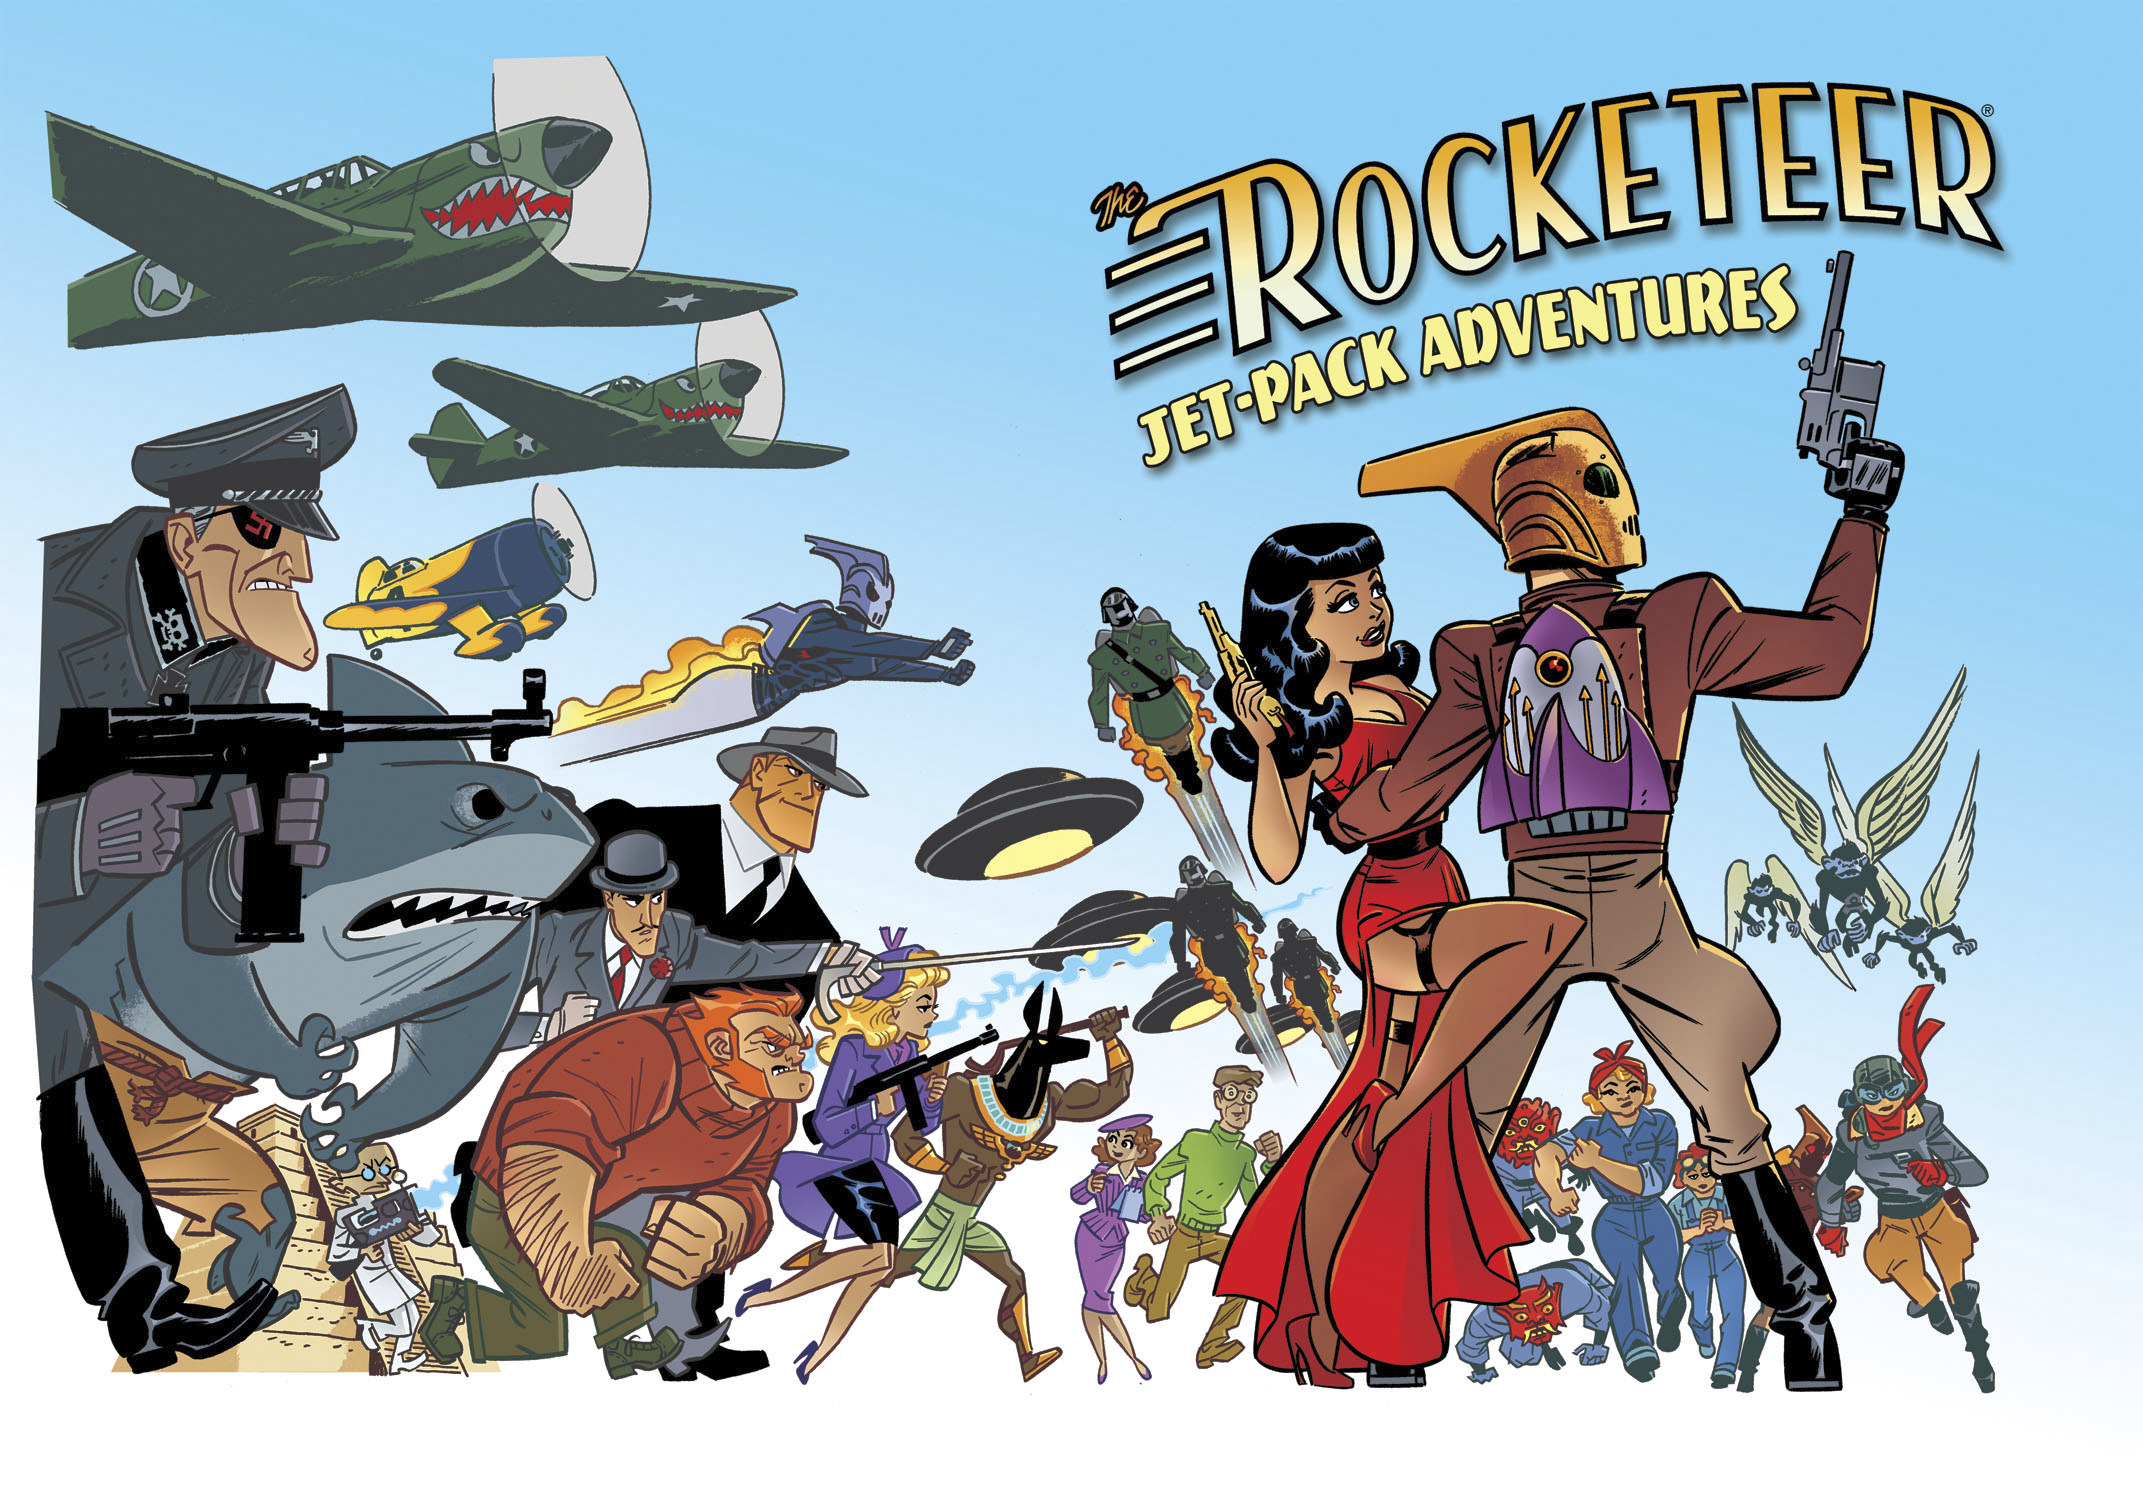 ROCKETEER JET PACK ADVENTURES PROSE SC